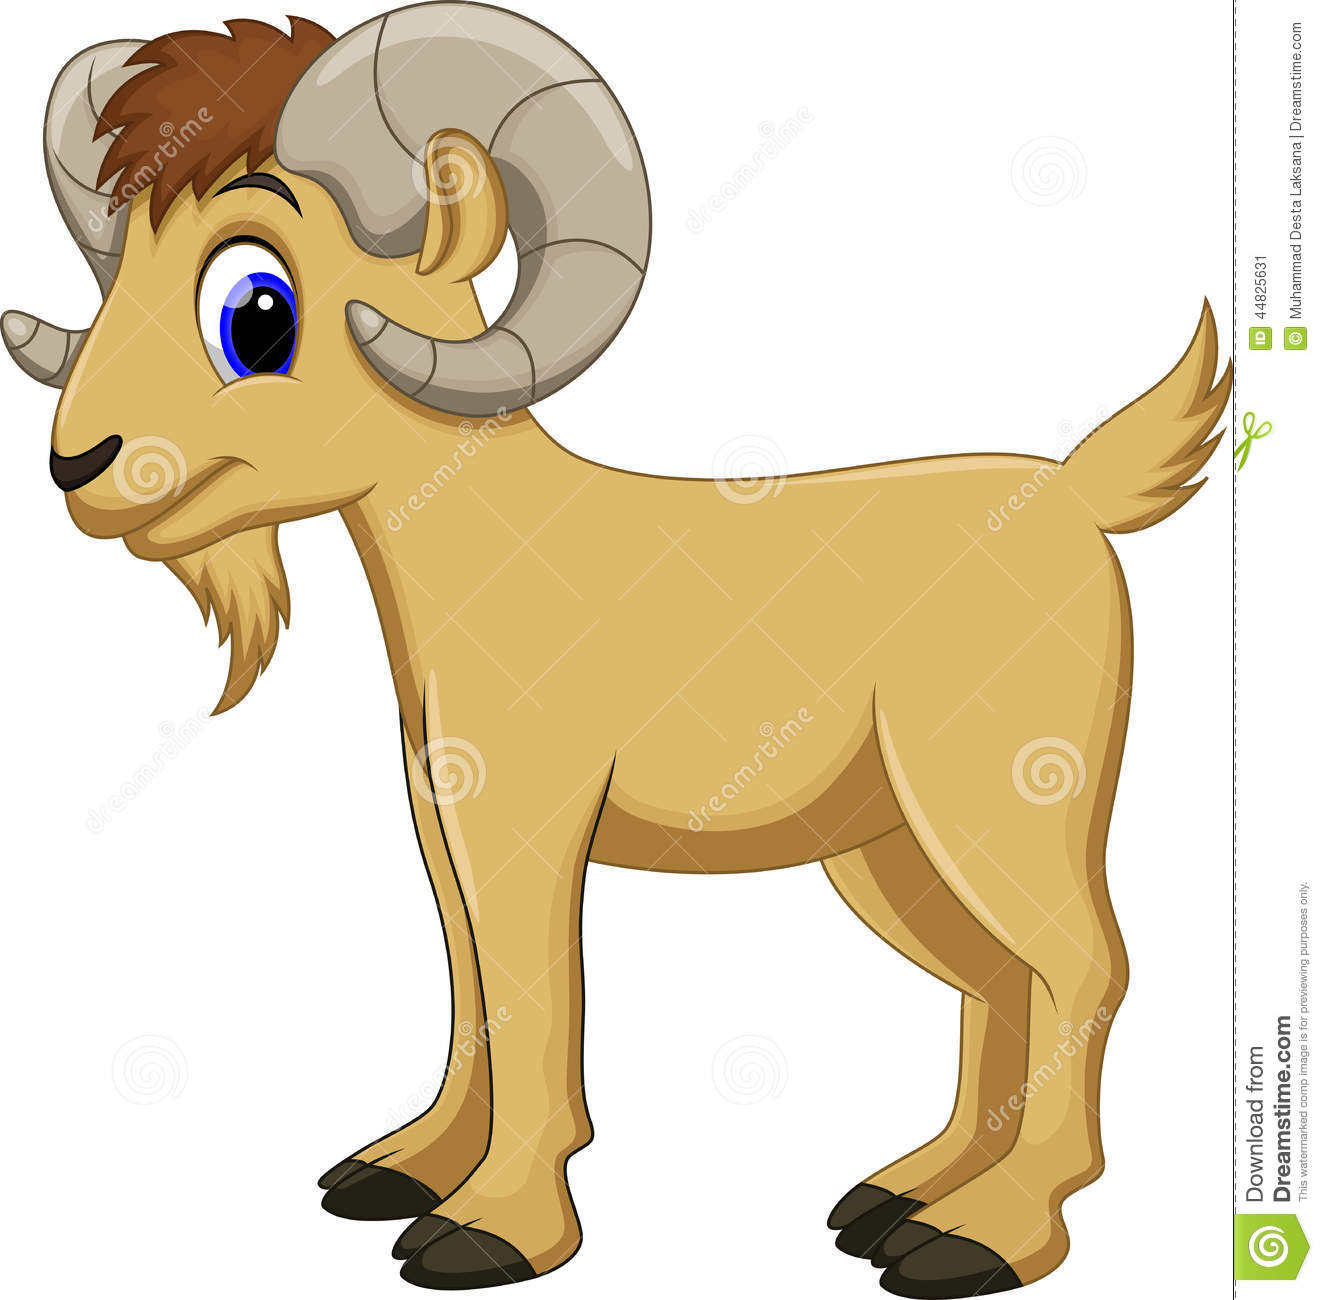 The goat clipart - Clipground